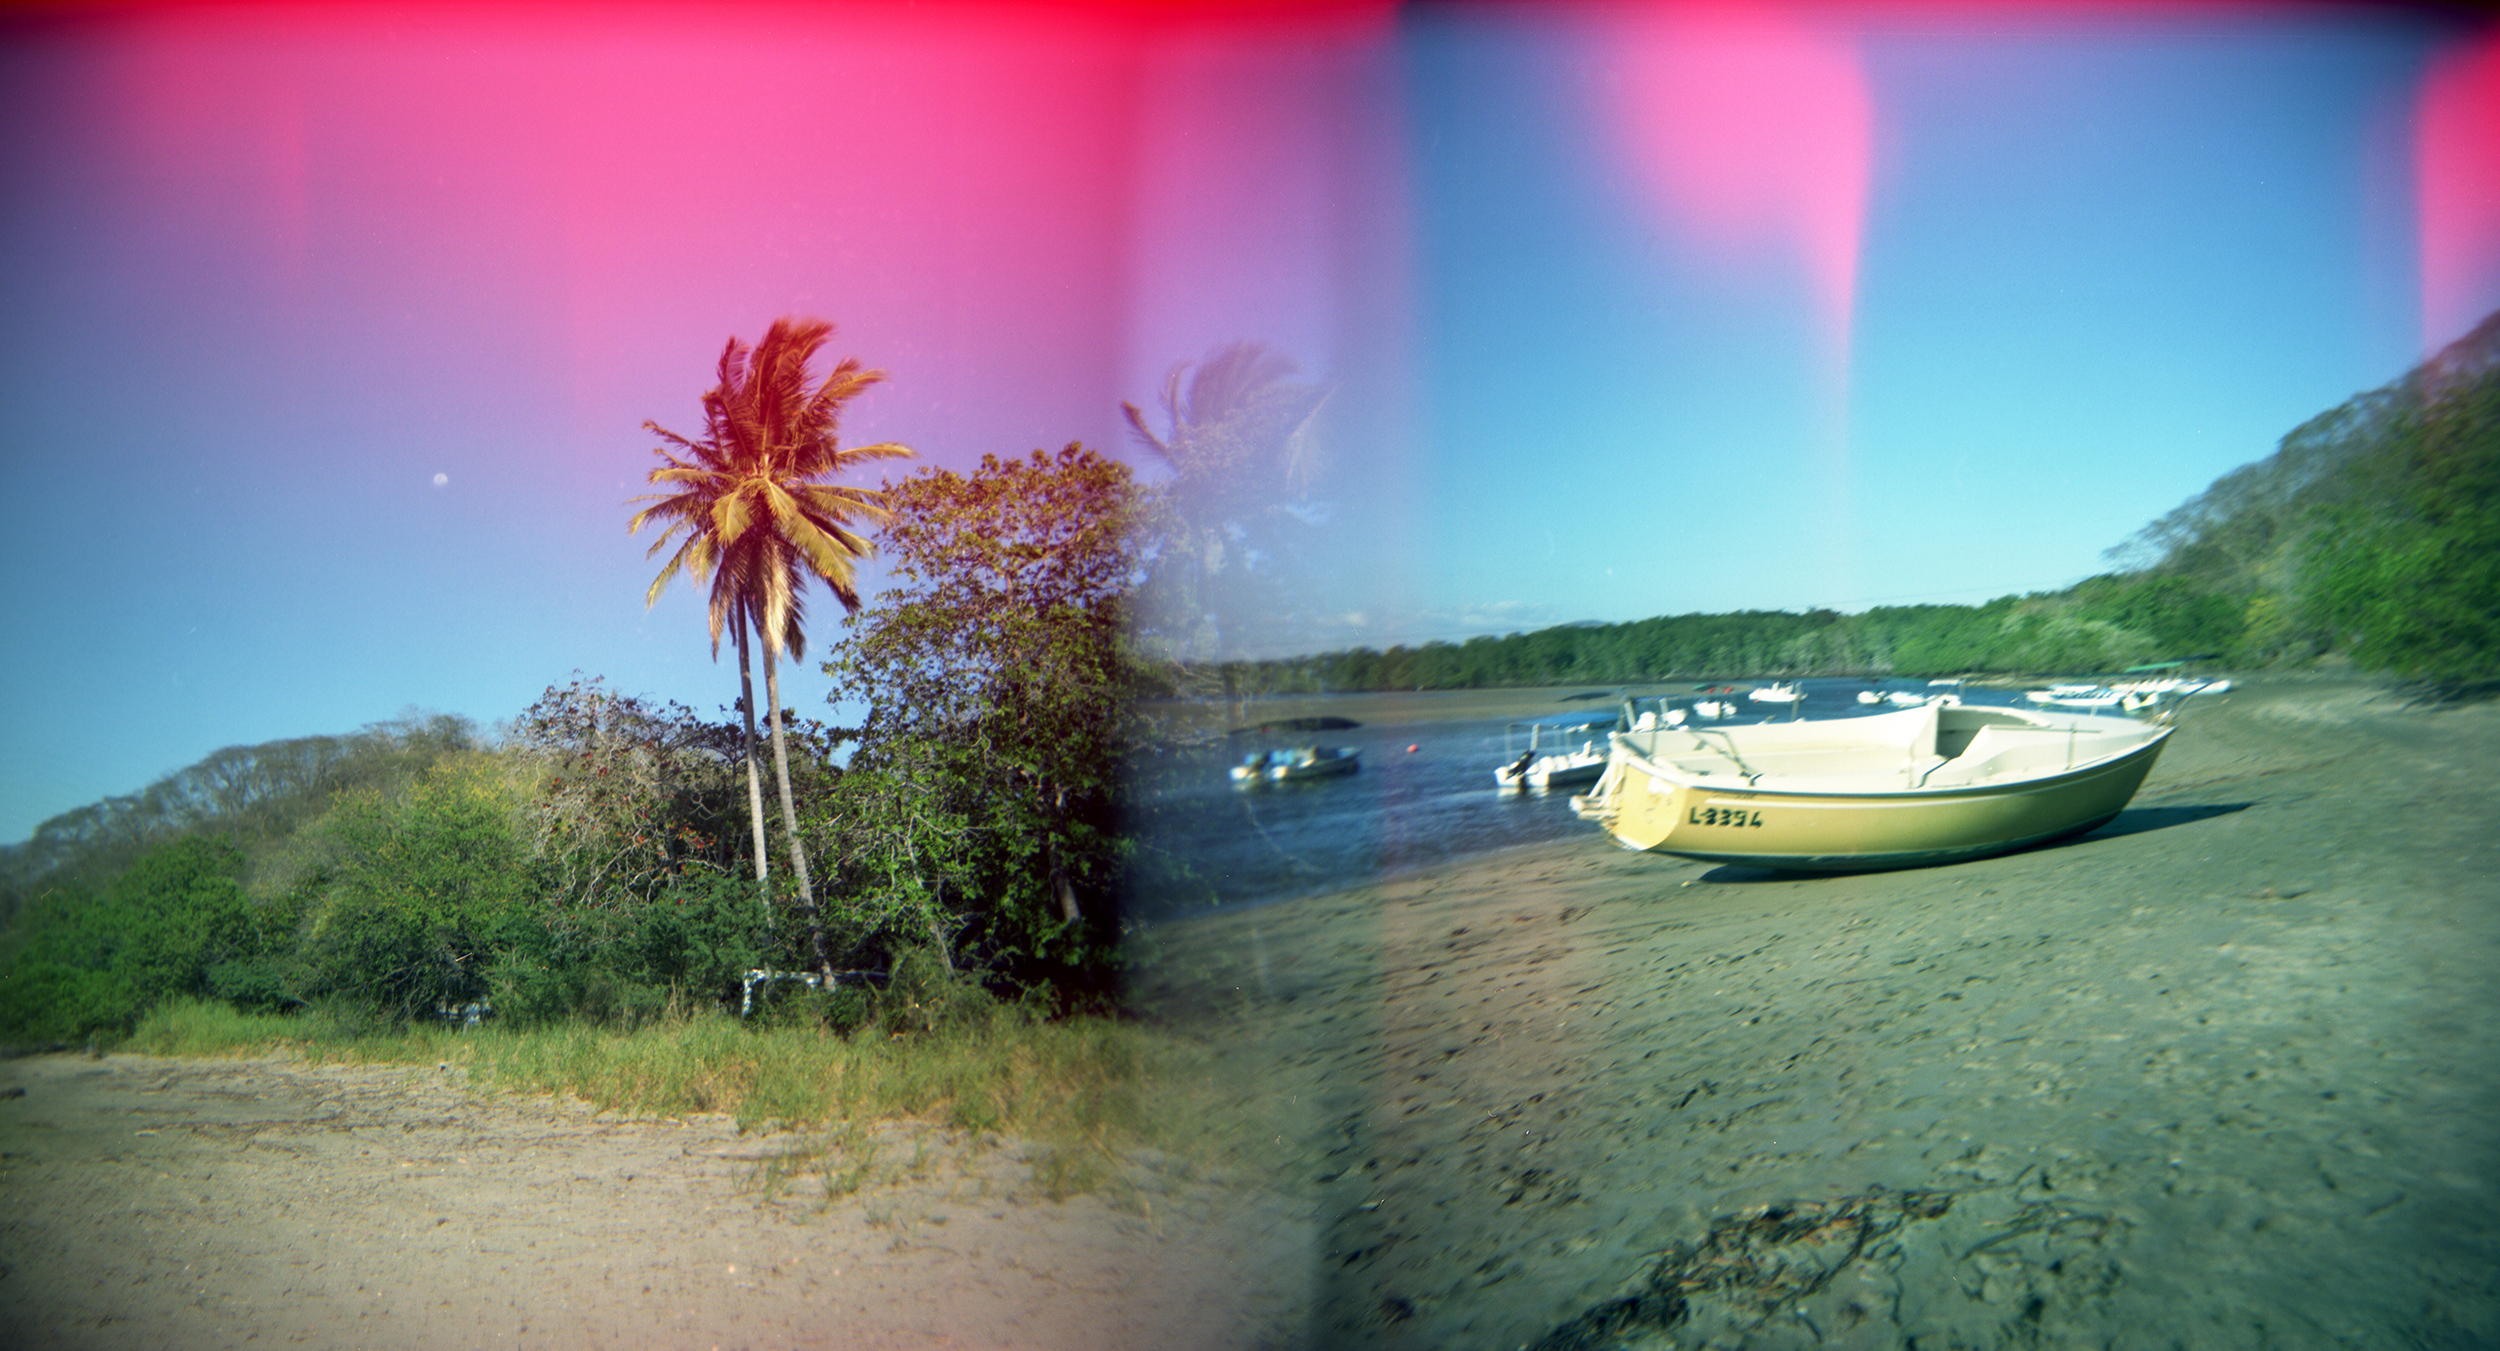 Palm & Boat, Double Exposure